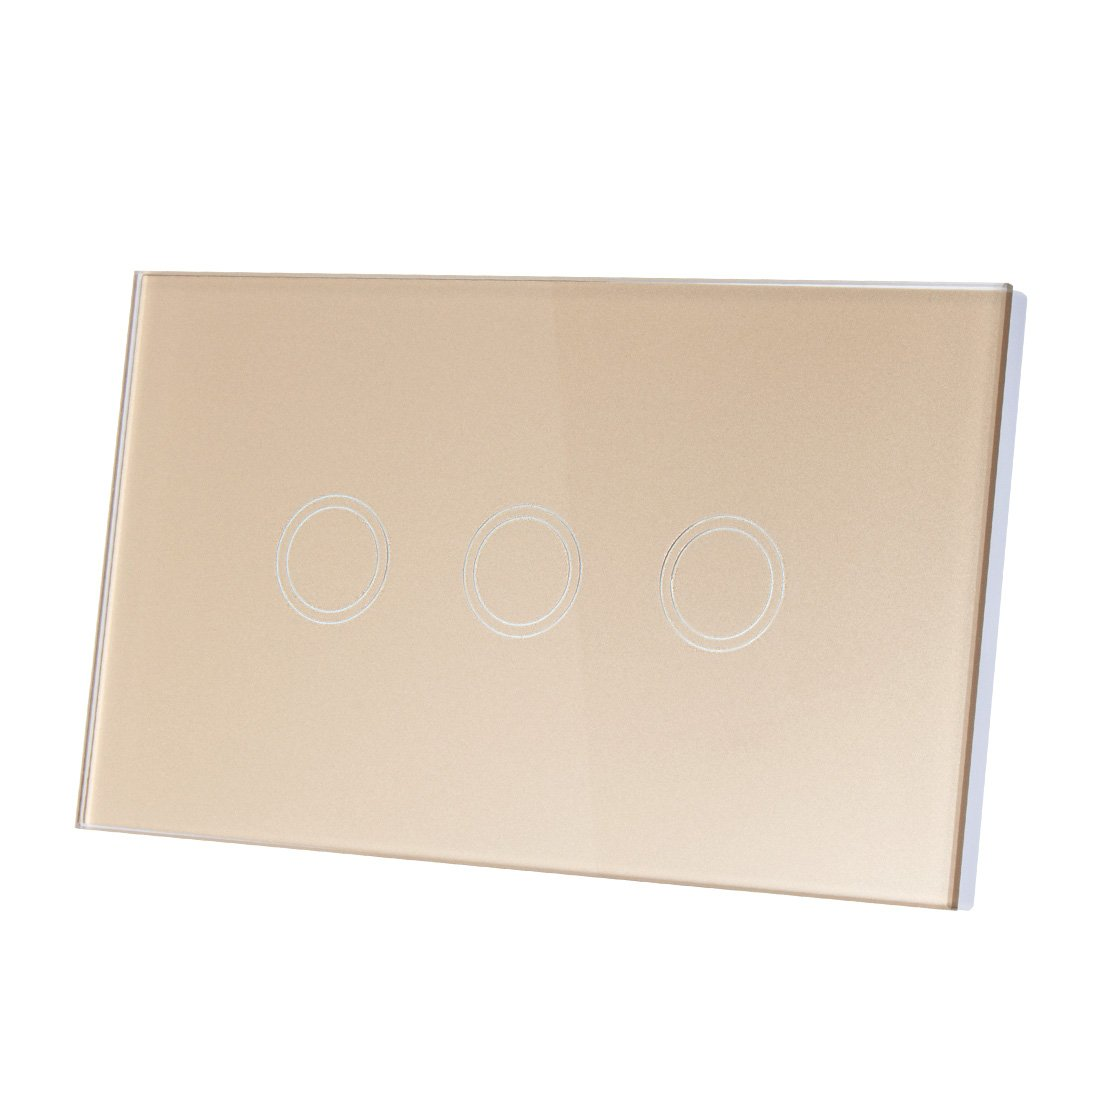 uxcell Touch Wall Light Switch, Luxury Crystal Glass Panel, AC 110-240V 1 Way 3 Gang Smart Touch Switch Gold US by uxcell (Image #1)